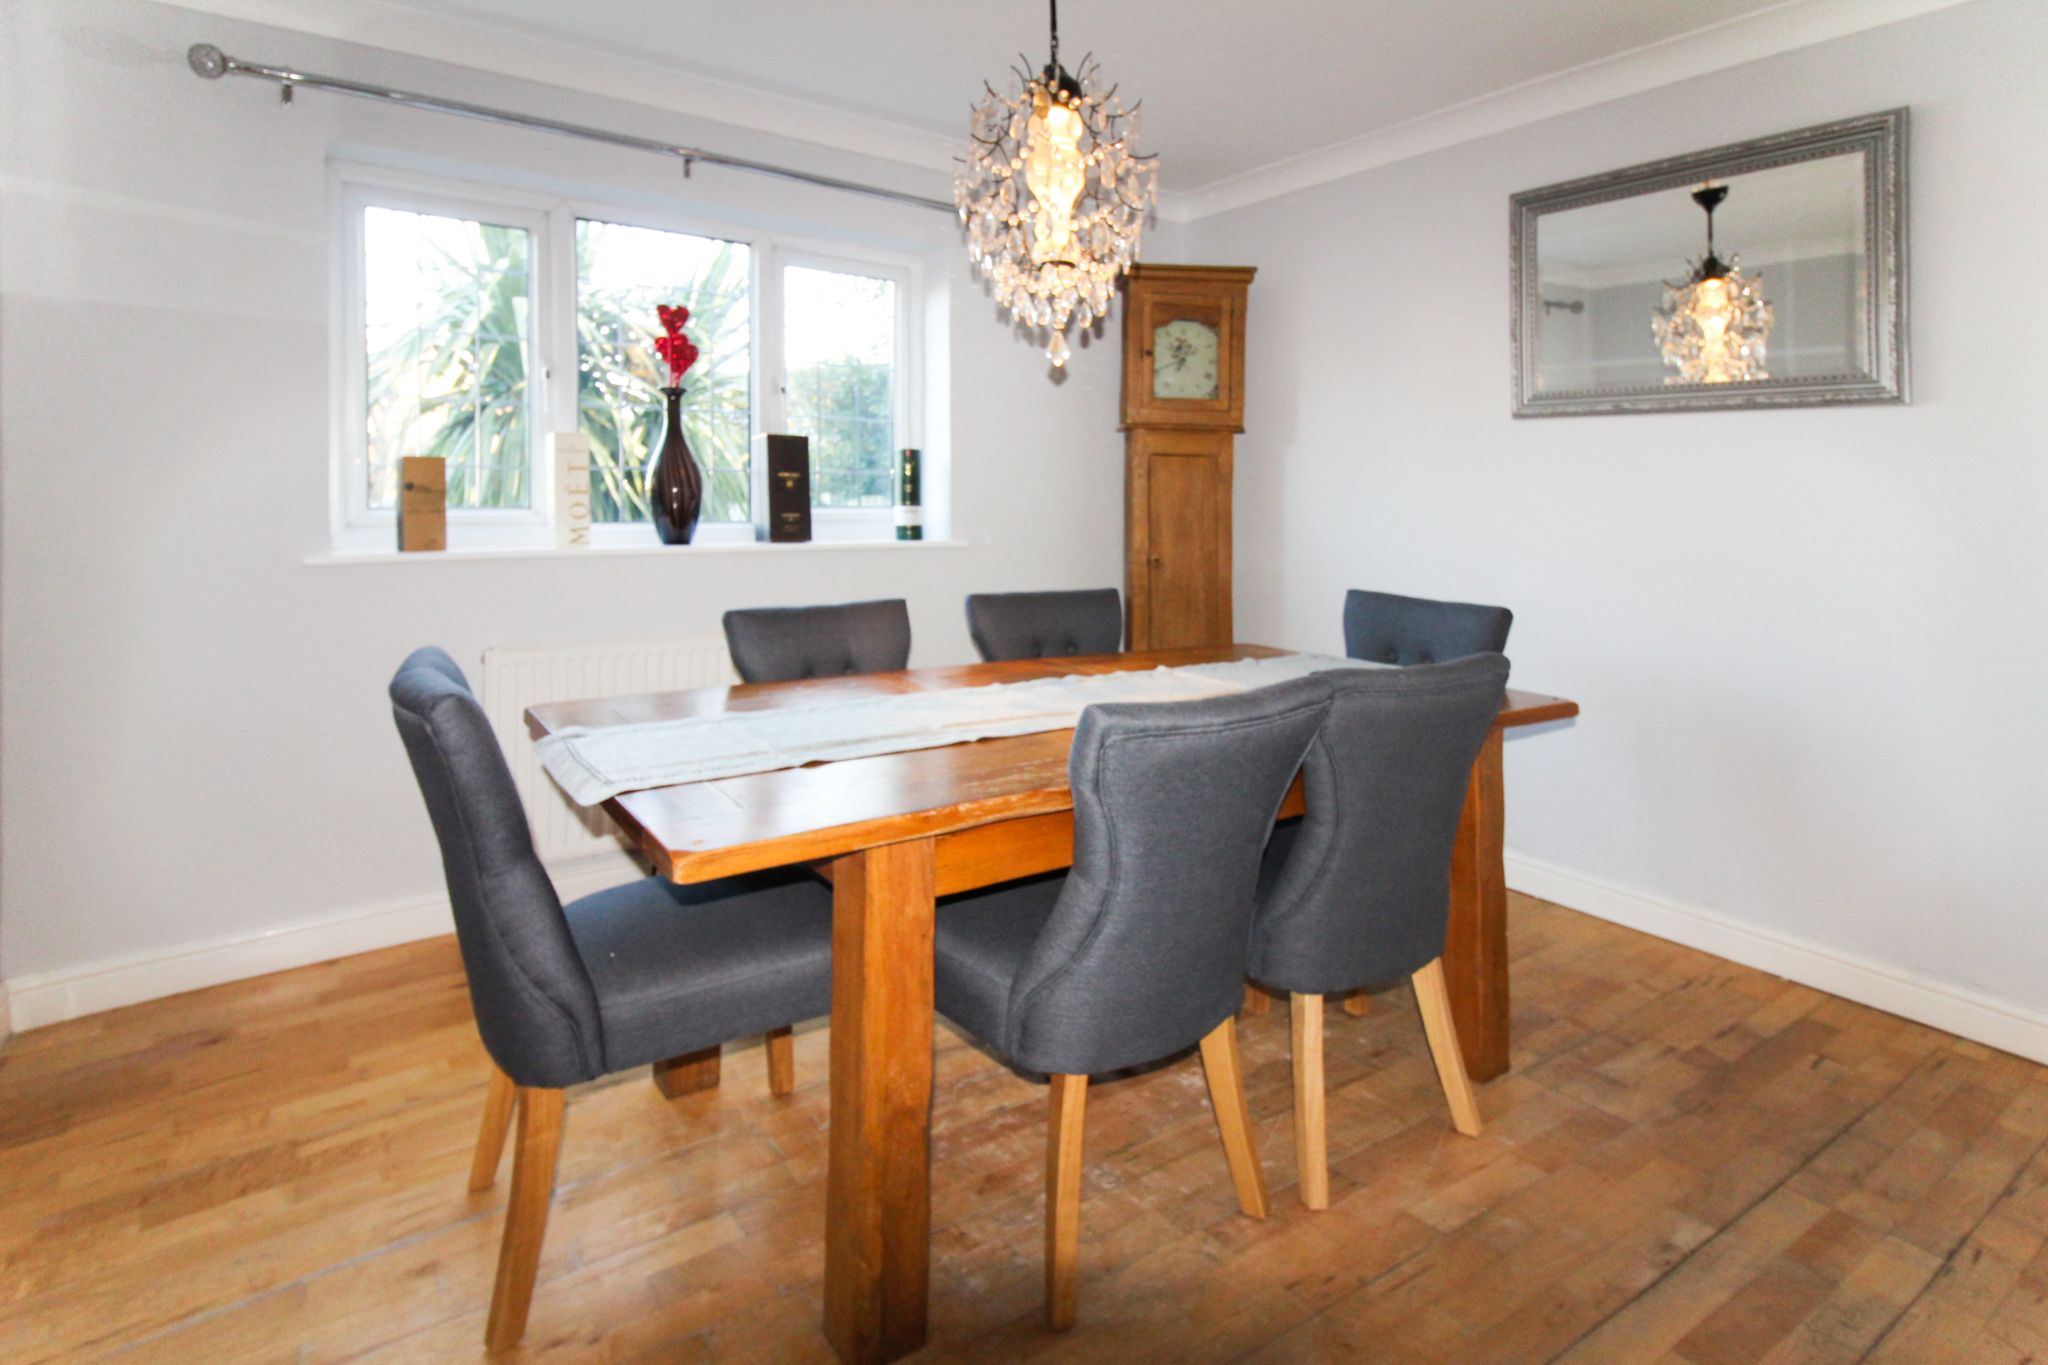 6 bedroom detached house SSTC in Solihull - Photograph 6.